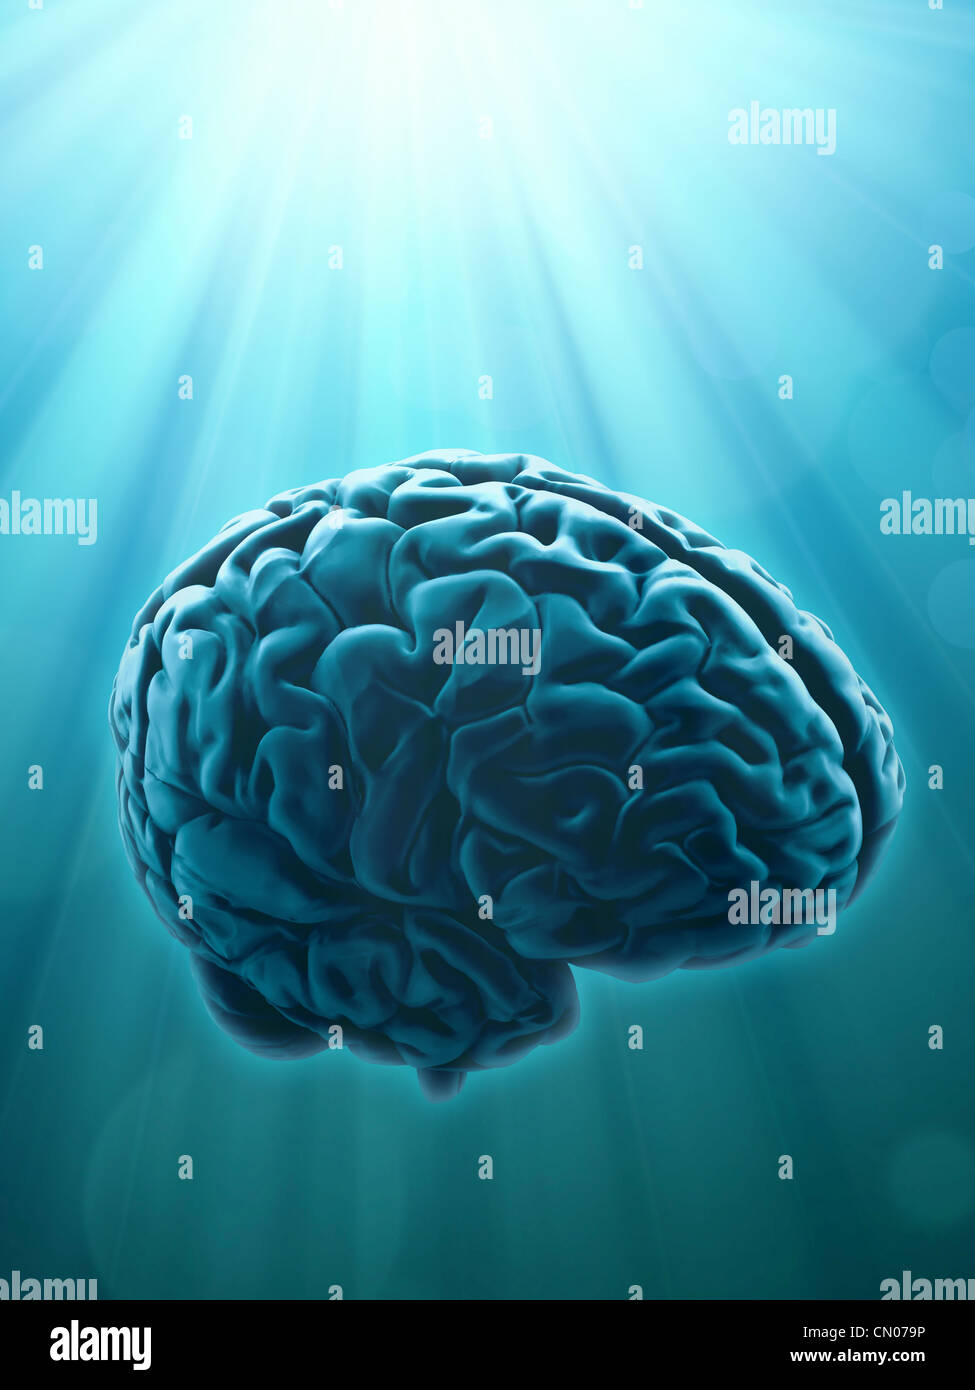 Knowledge and creativity concept illustration with human brain - Stock Image